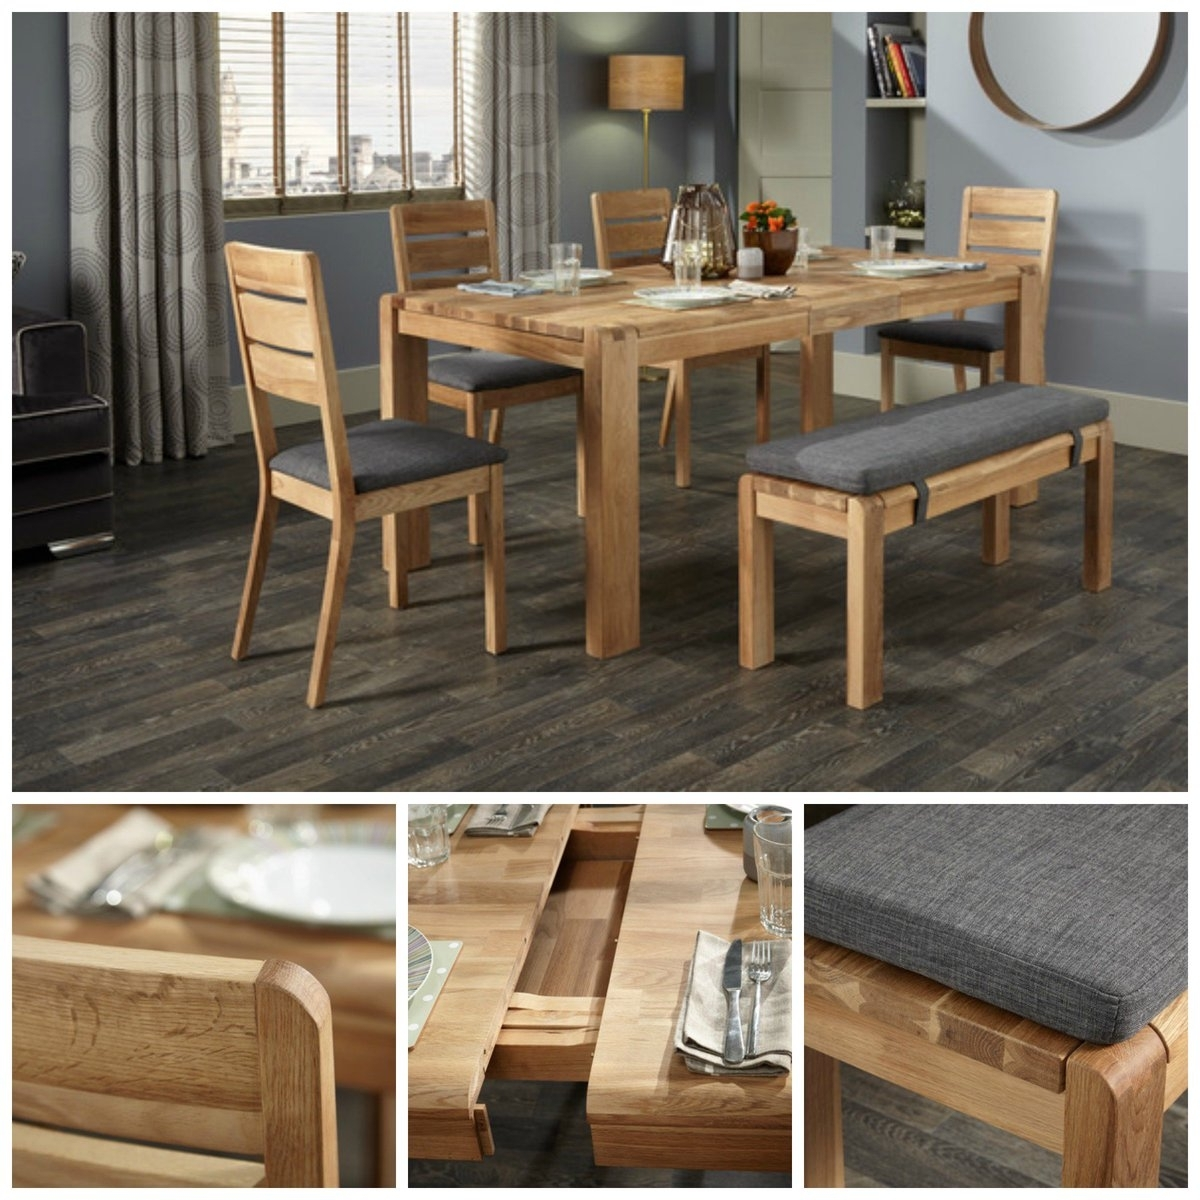 """Scs Sofas On Twitter: """"get Your Dining Room Ready For Summer With Throughout Most Popular Scs Dining Room Furniture (View 22 of 25)"""